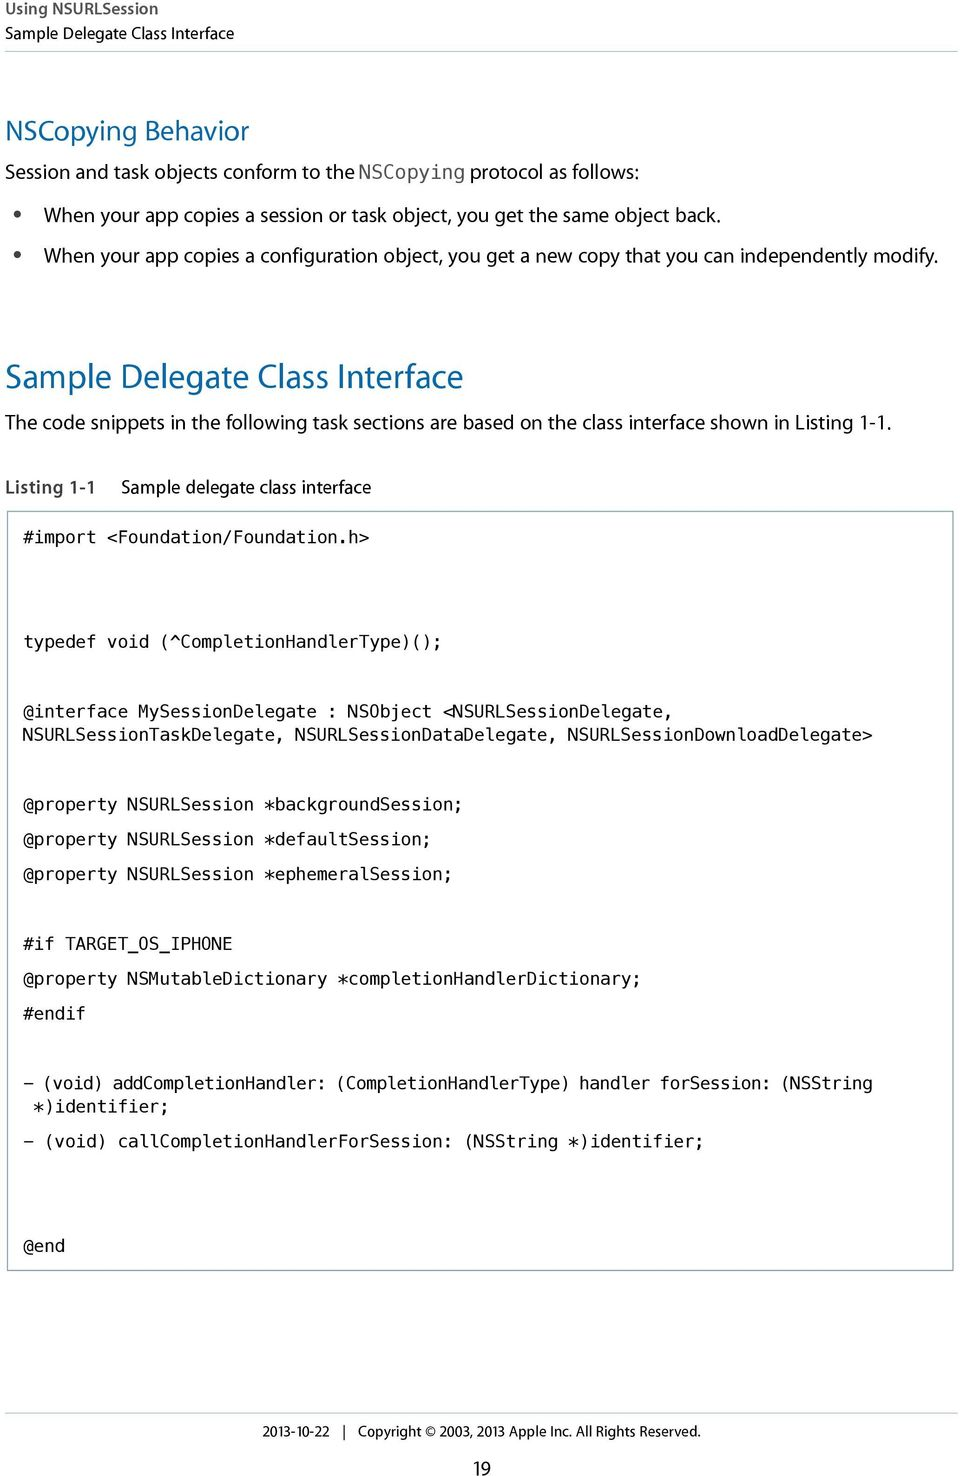 Sample Delegate Class Interface The code snippets in the following task sections are based on the class interface shown in Listing 1-1.